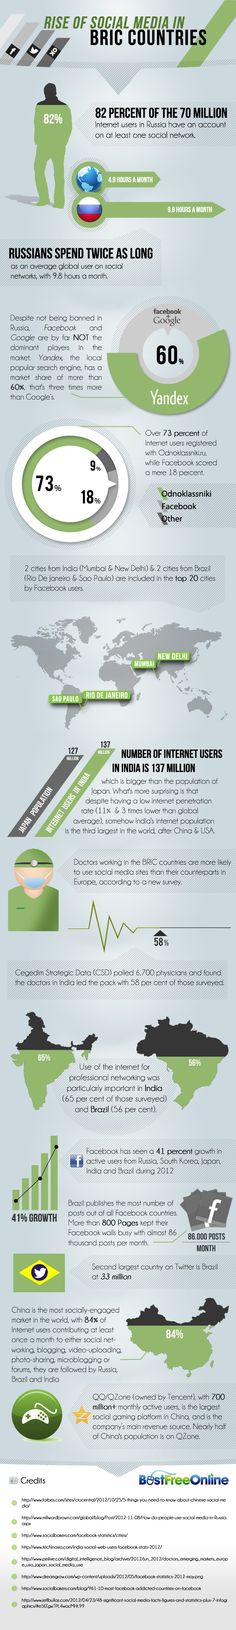 INFOGRAPHIC: Facebook On The Rise In Russia, India, Brazil